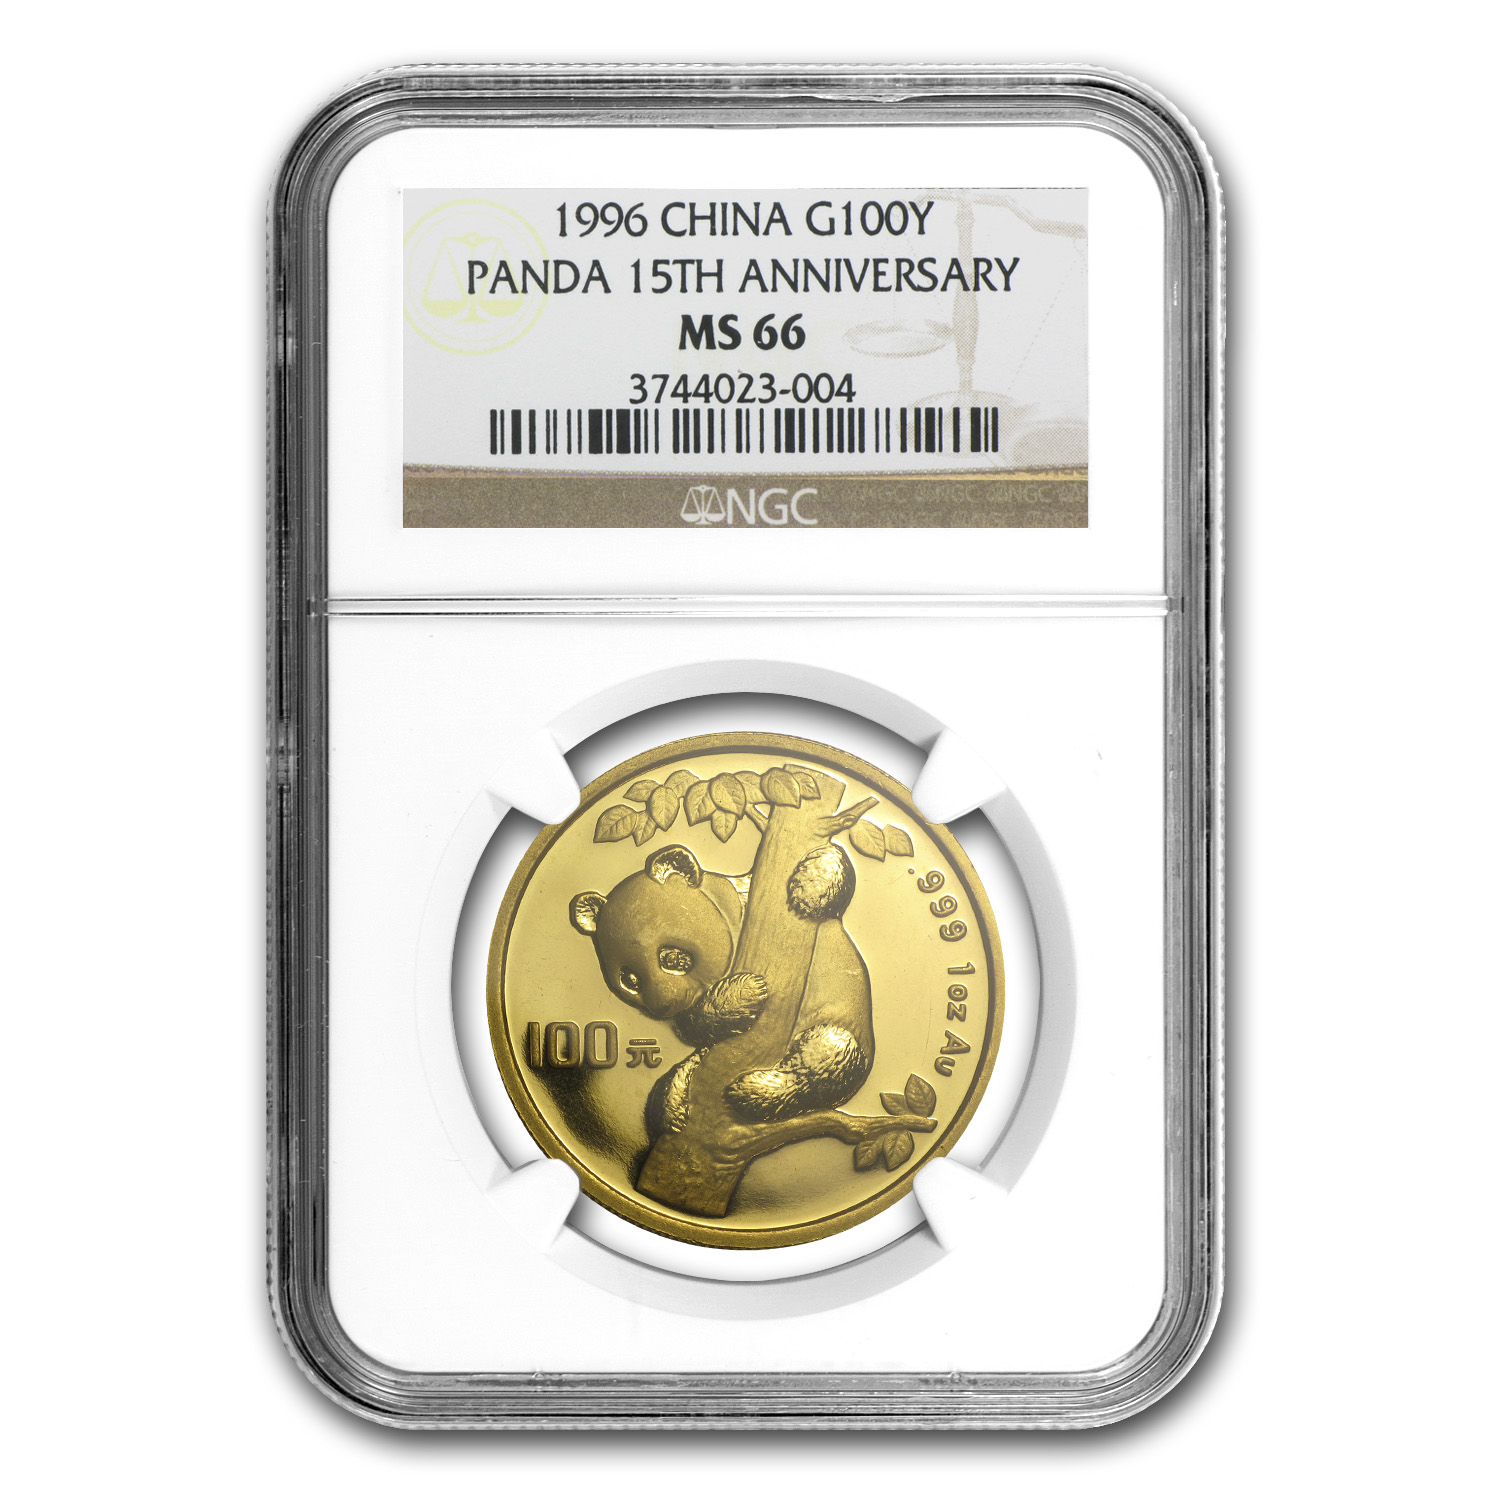 1996 China 1 oz Gold Panda MS-66 NGC (15th Anniv)